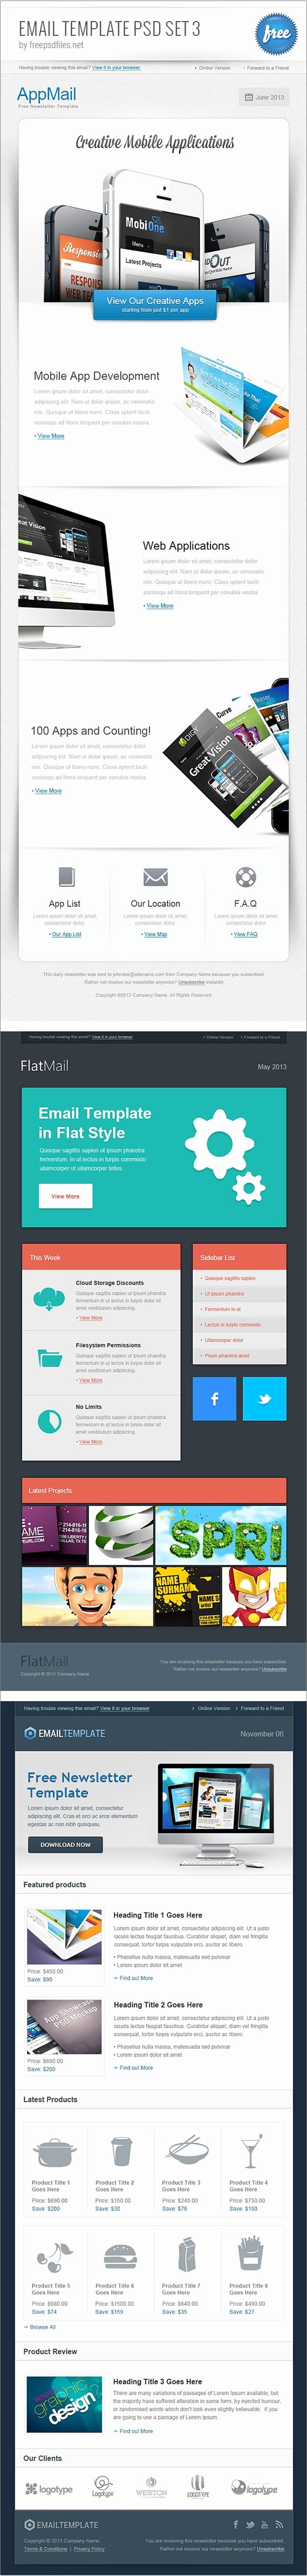 Free Email Template Psd Unique Free Email Newsletter Templates Psd Css Author